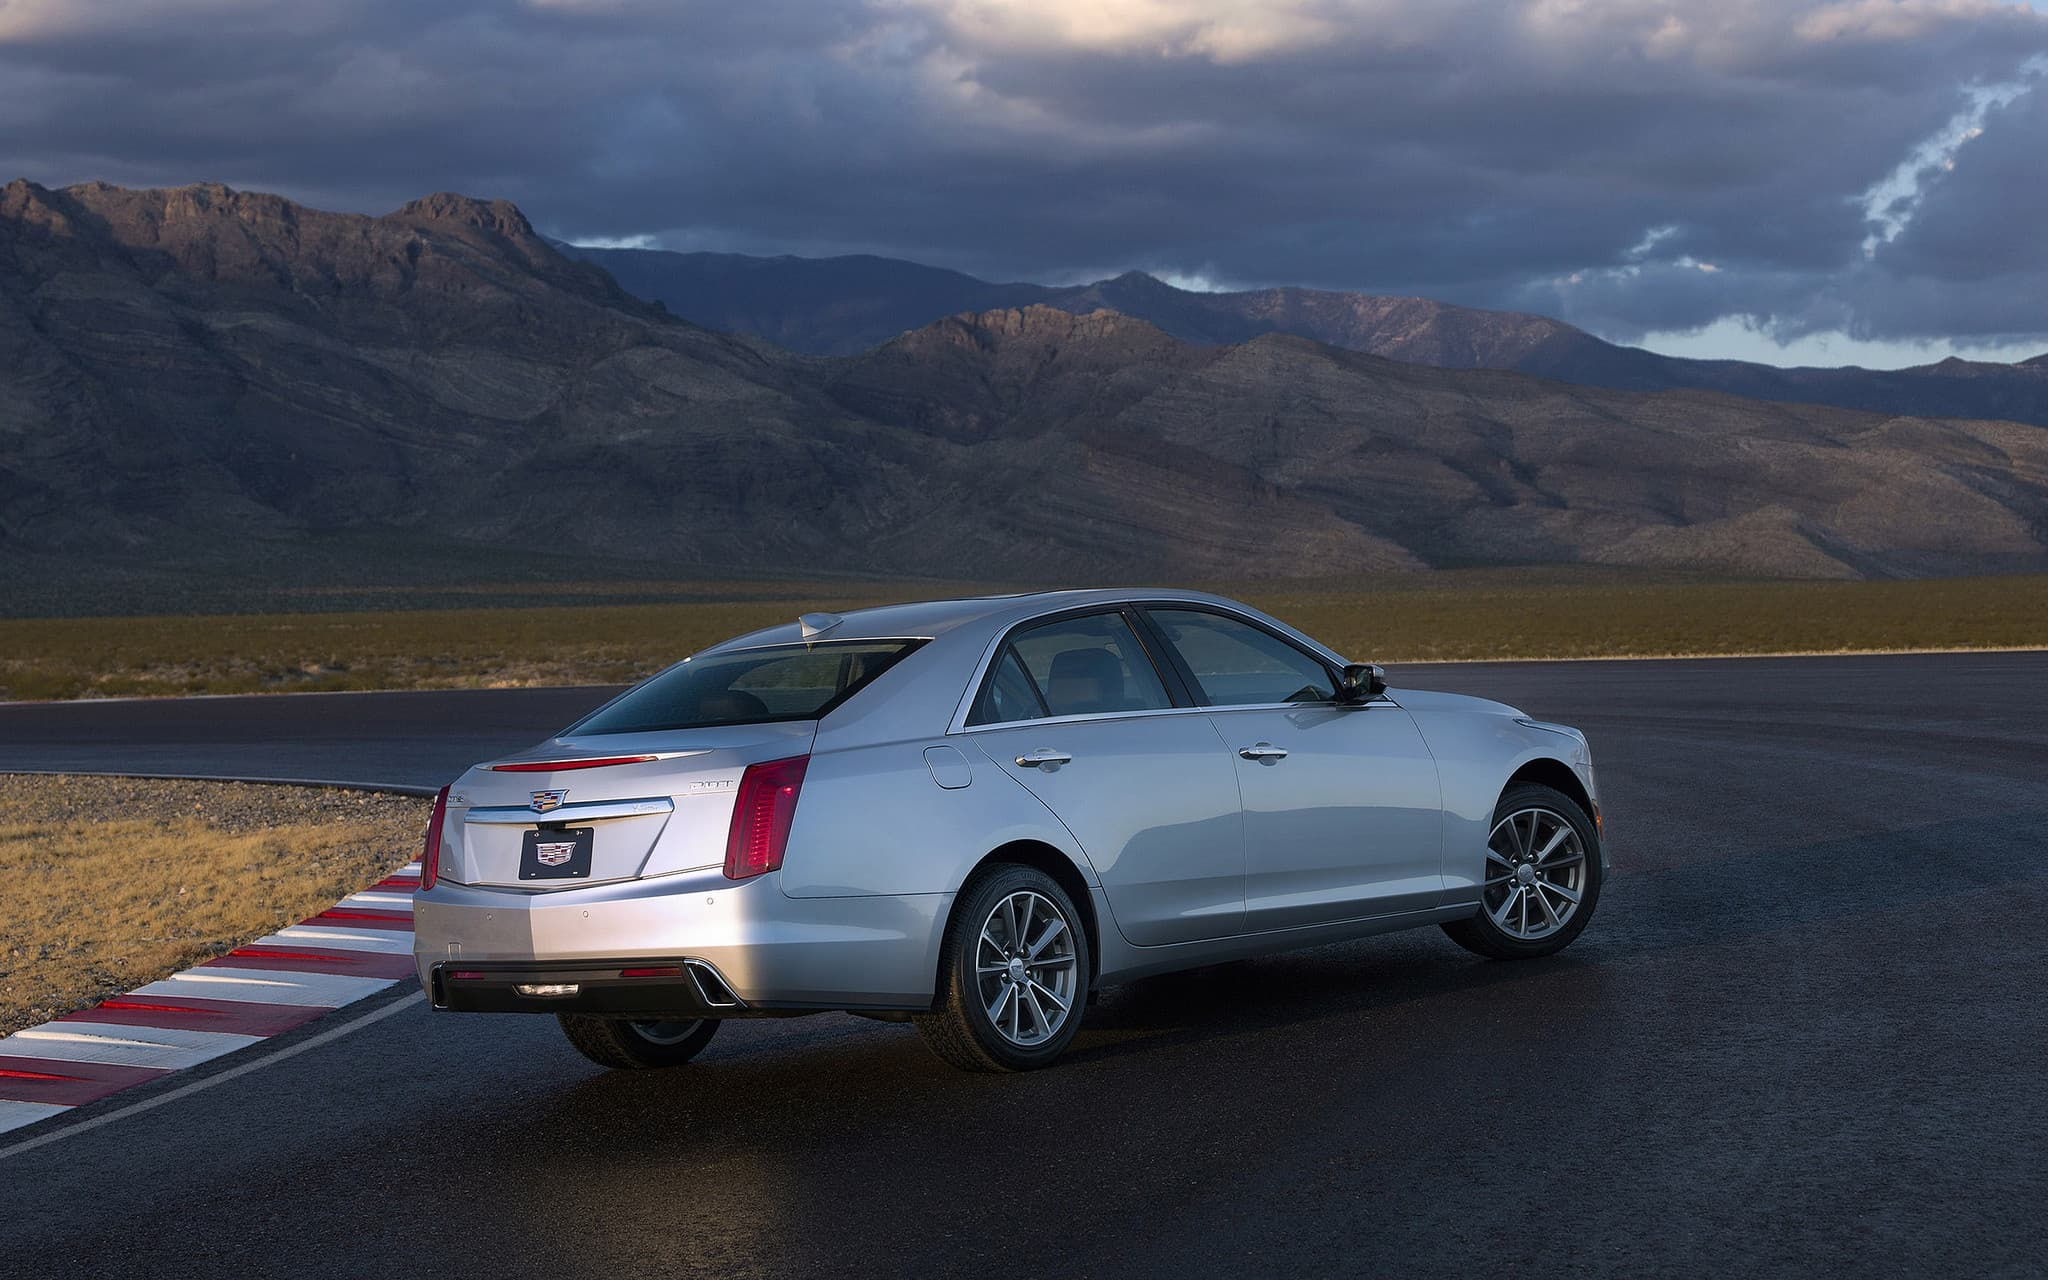 Cadillac CTS 2017 background